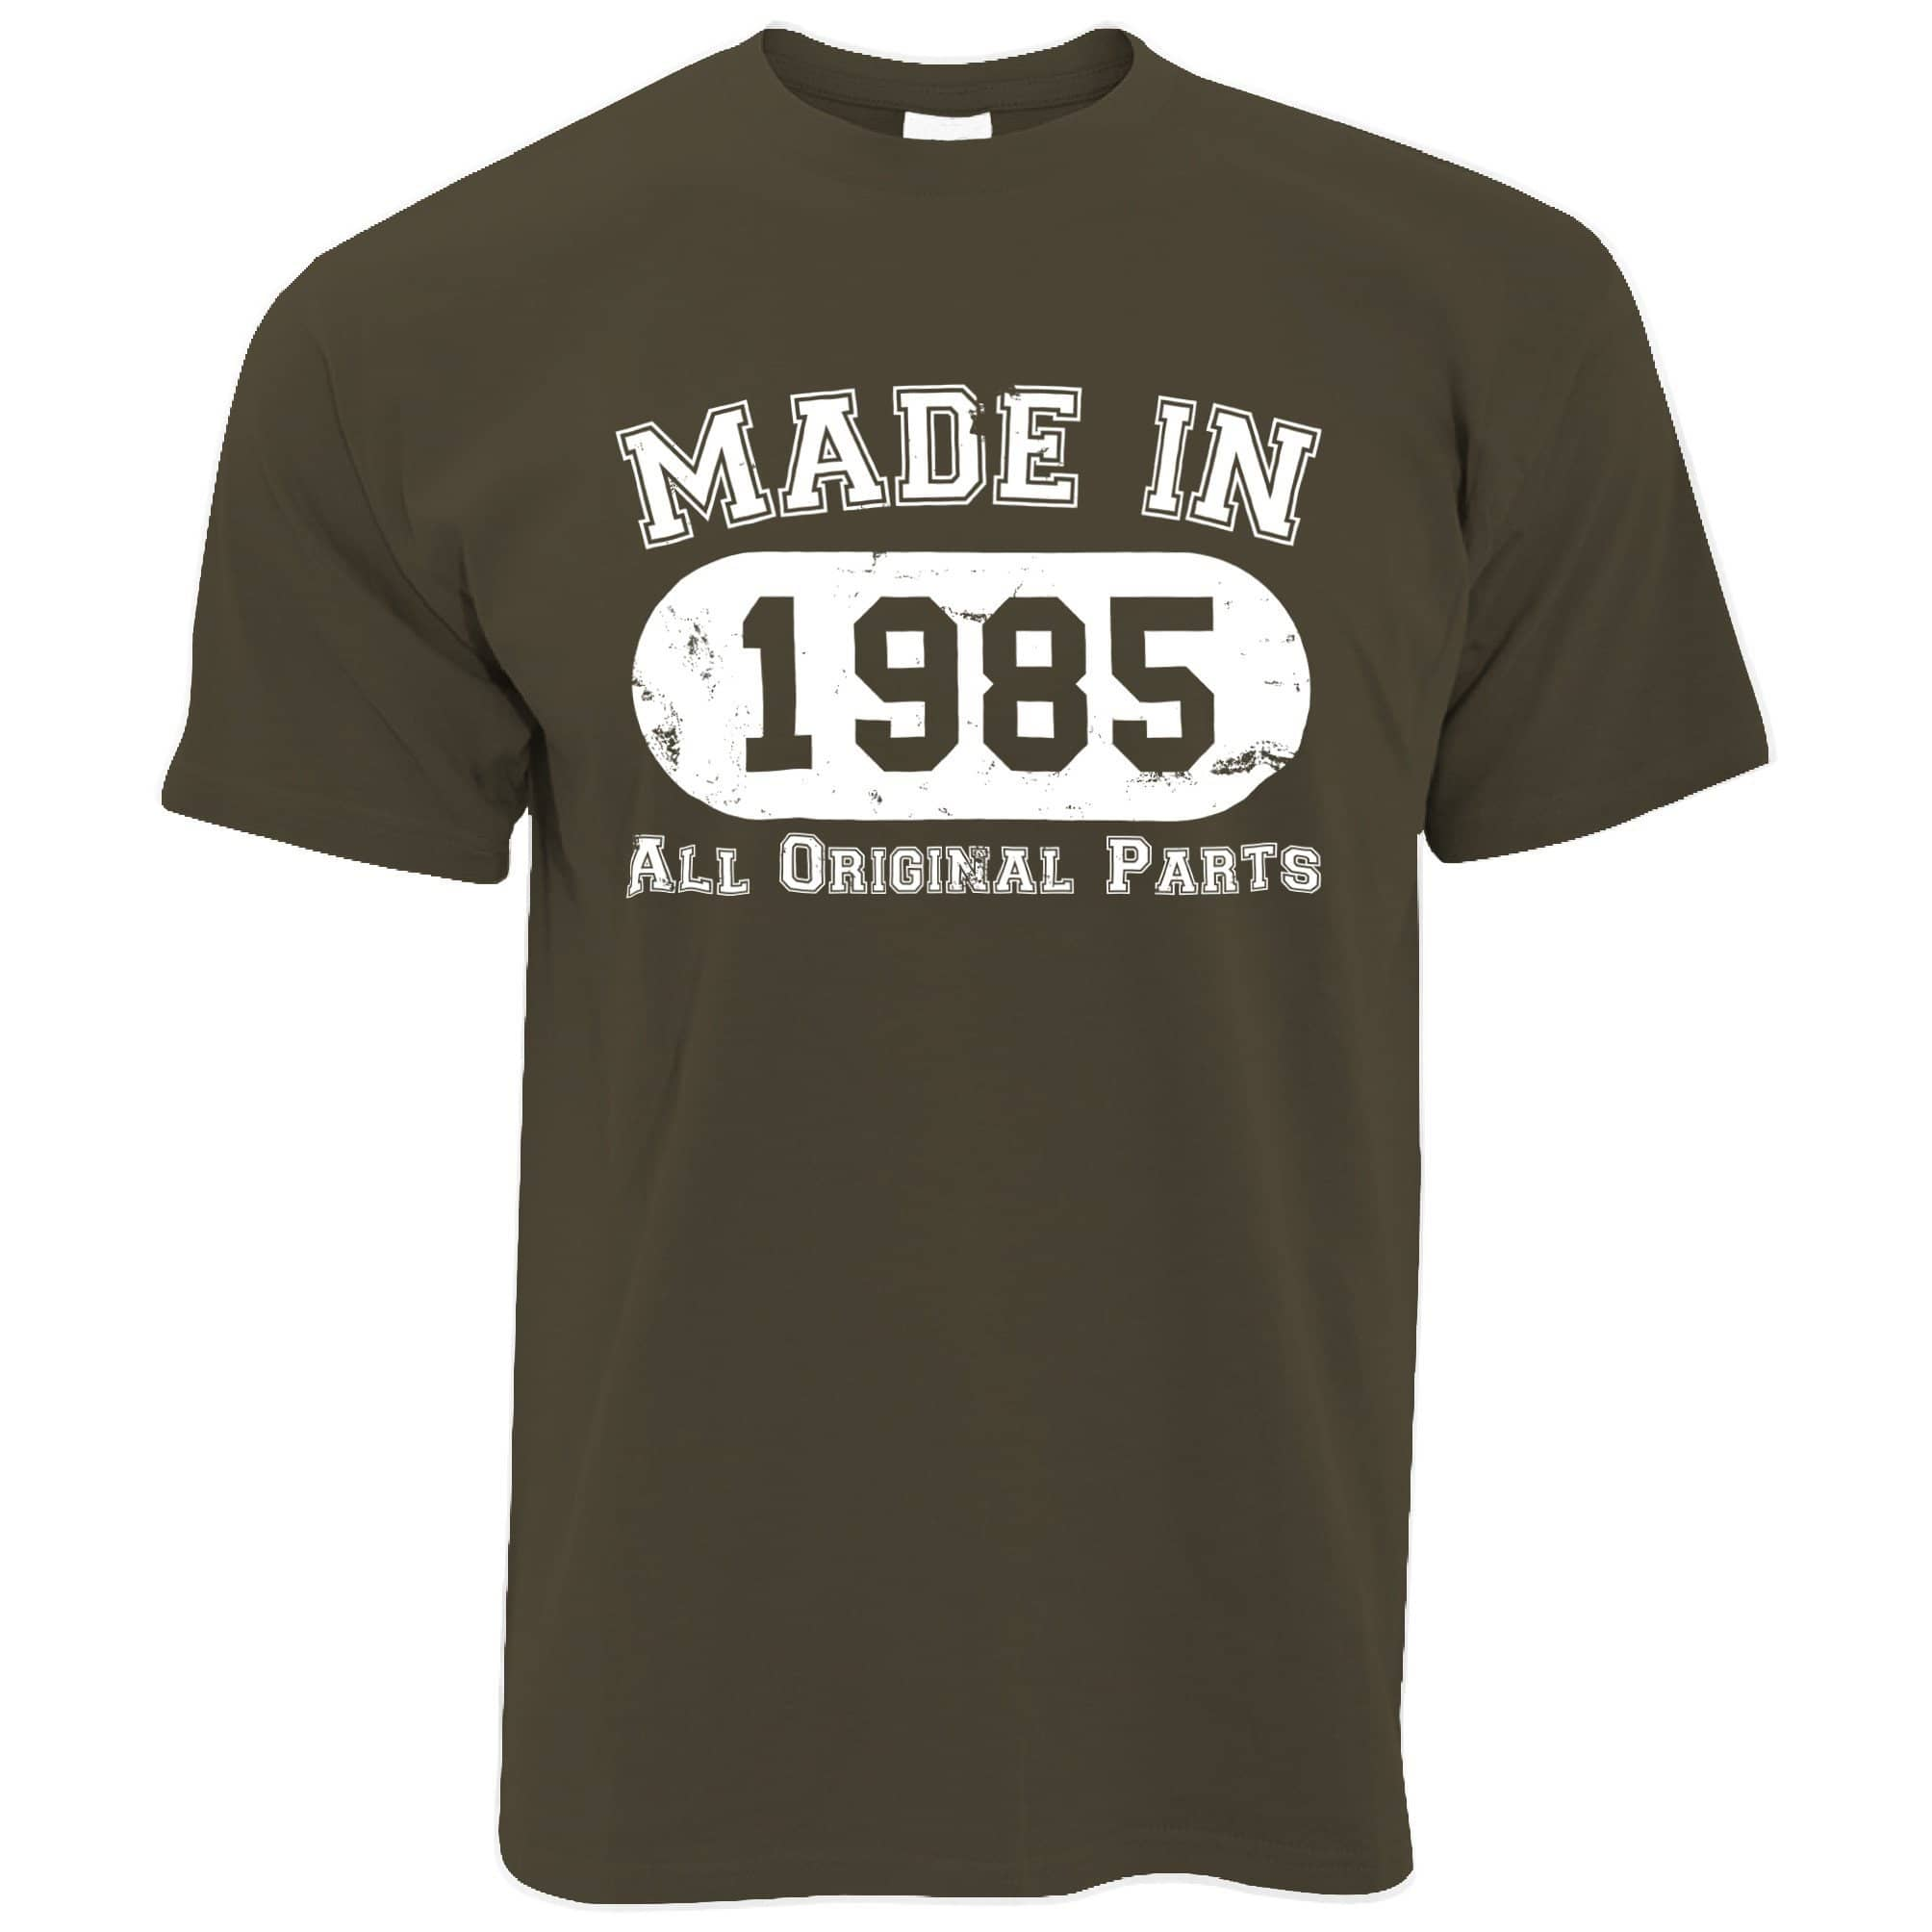 Made in 1985 All Original Parts Mens T-Shirt [Distressed]